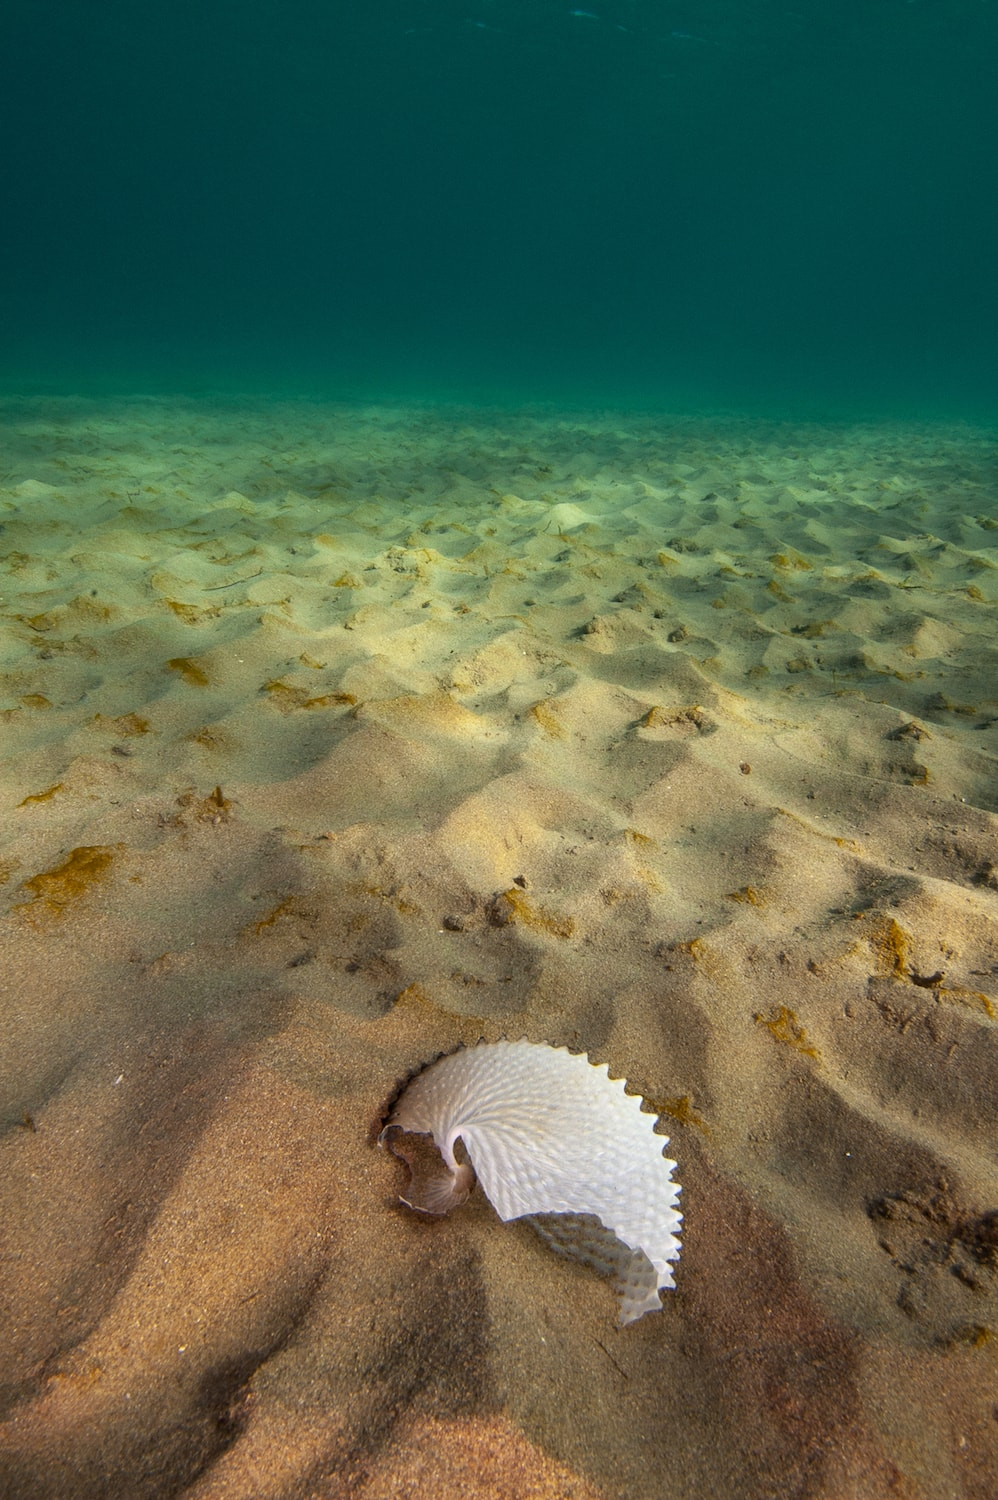 a lone shell on the seafloor under the beautiful turquoise green ocean